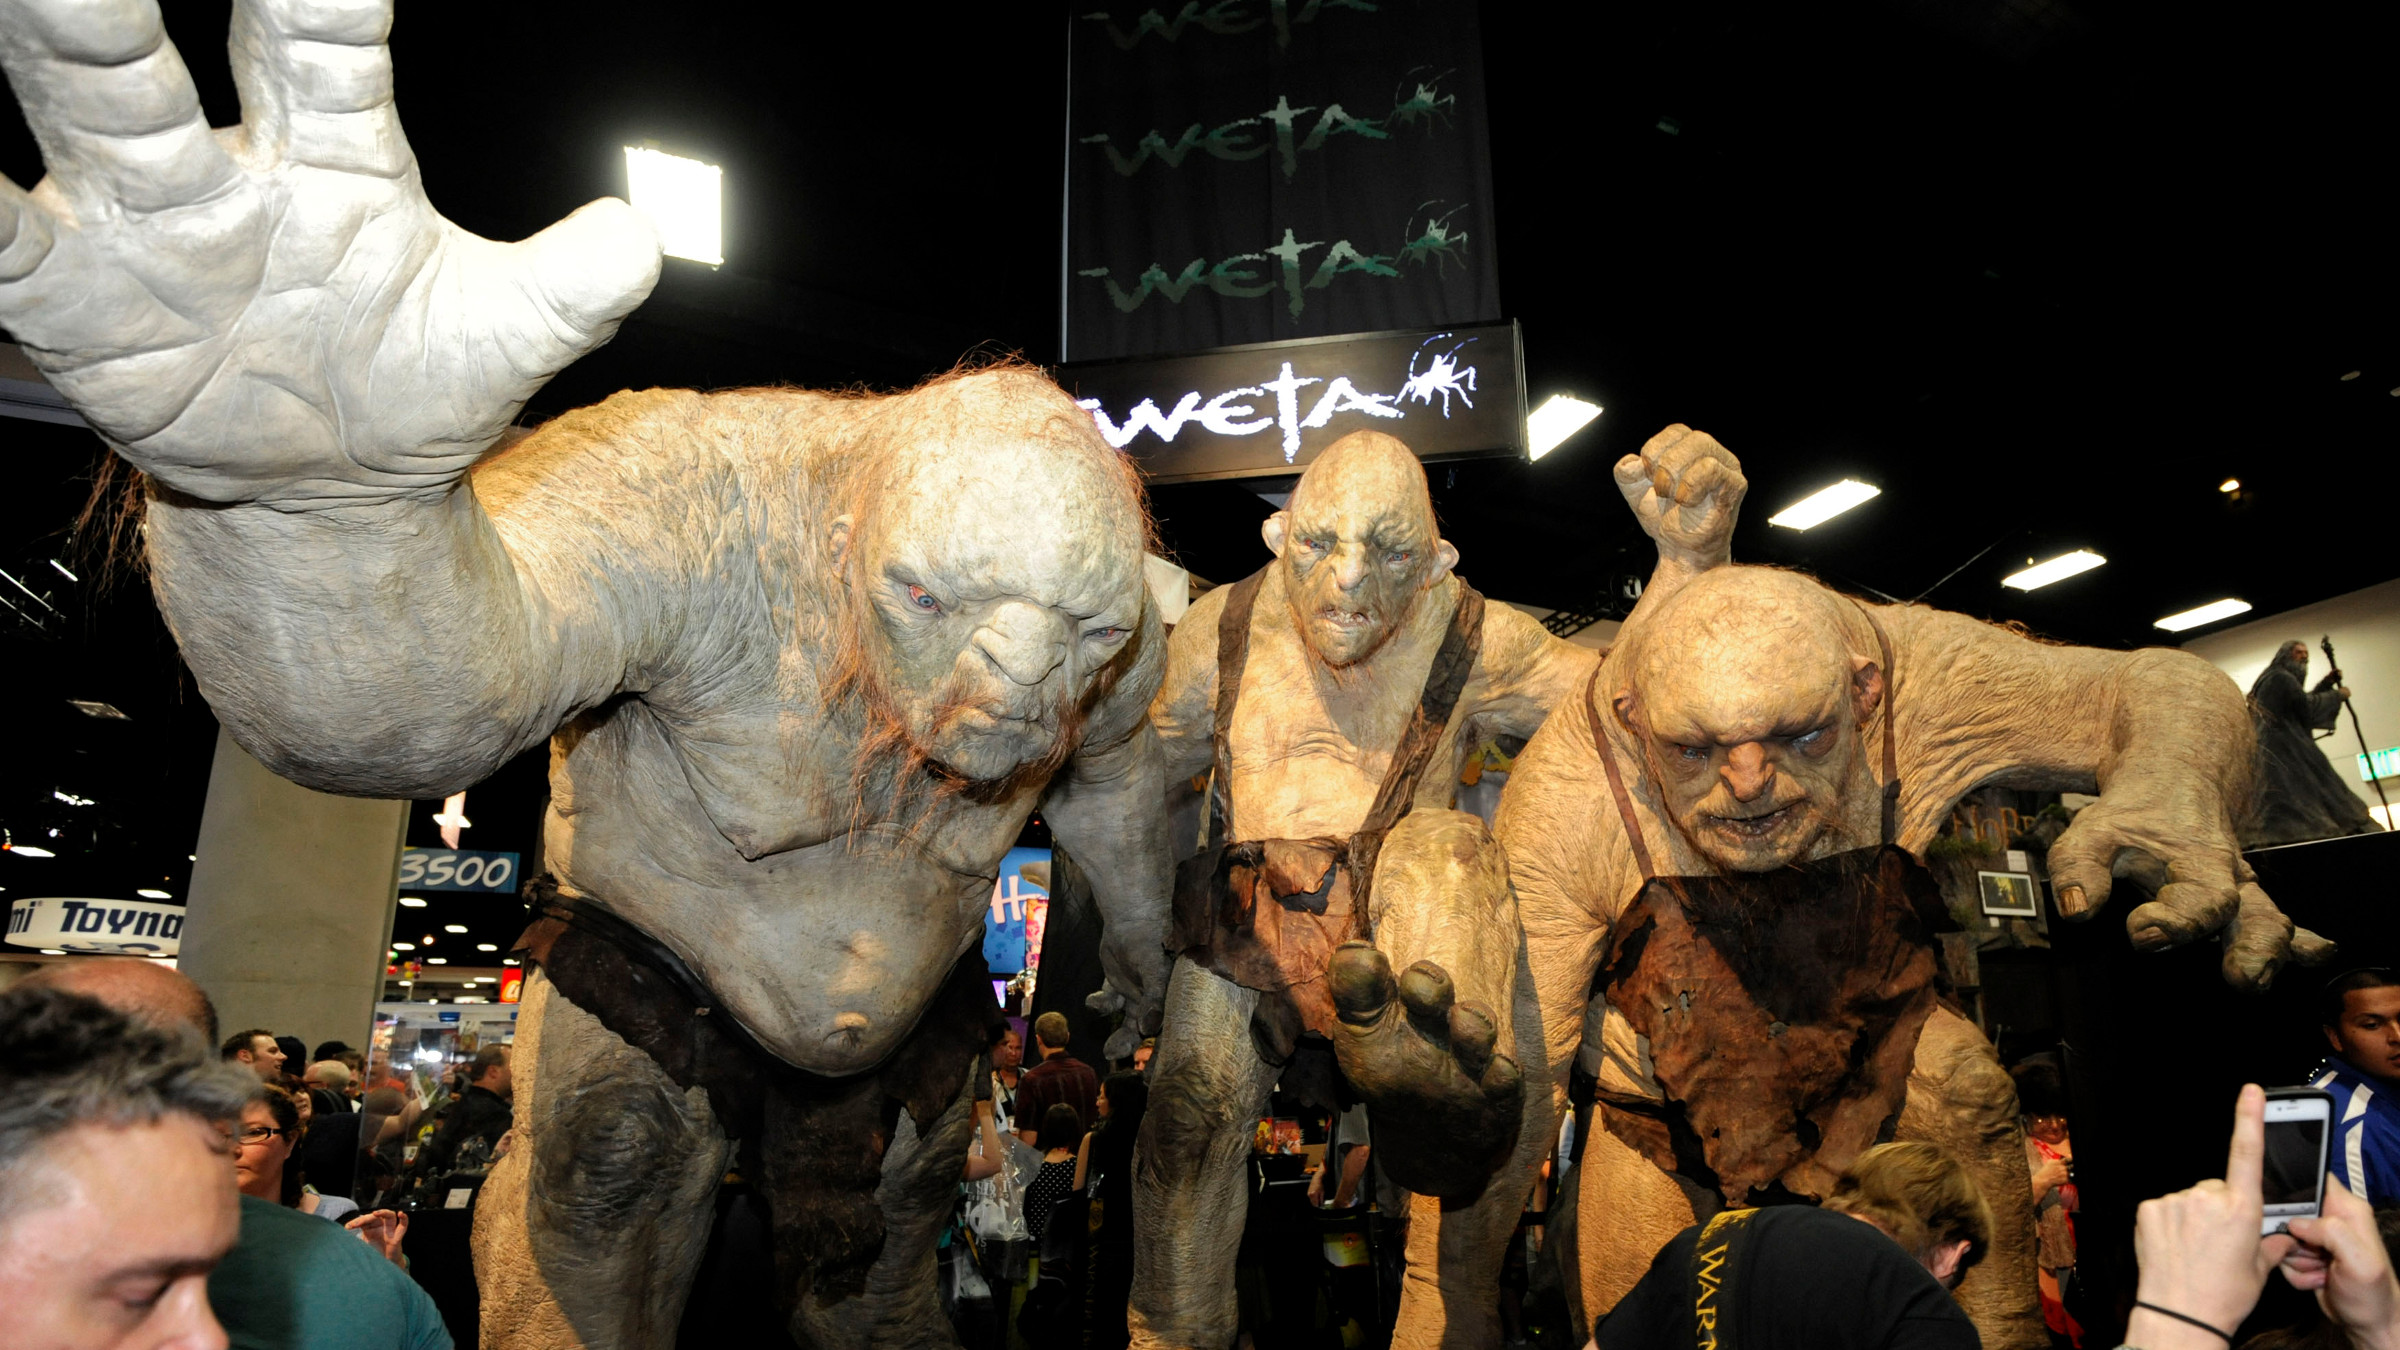 Fans walk past huge Stone Troll figures from the Lord of the Rings at the Comic-Con preview night held at the San Diego Convention Center on Wednesday July 11, 2012, in San Diego.